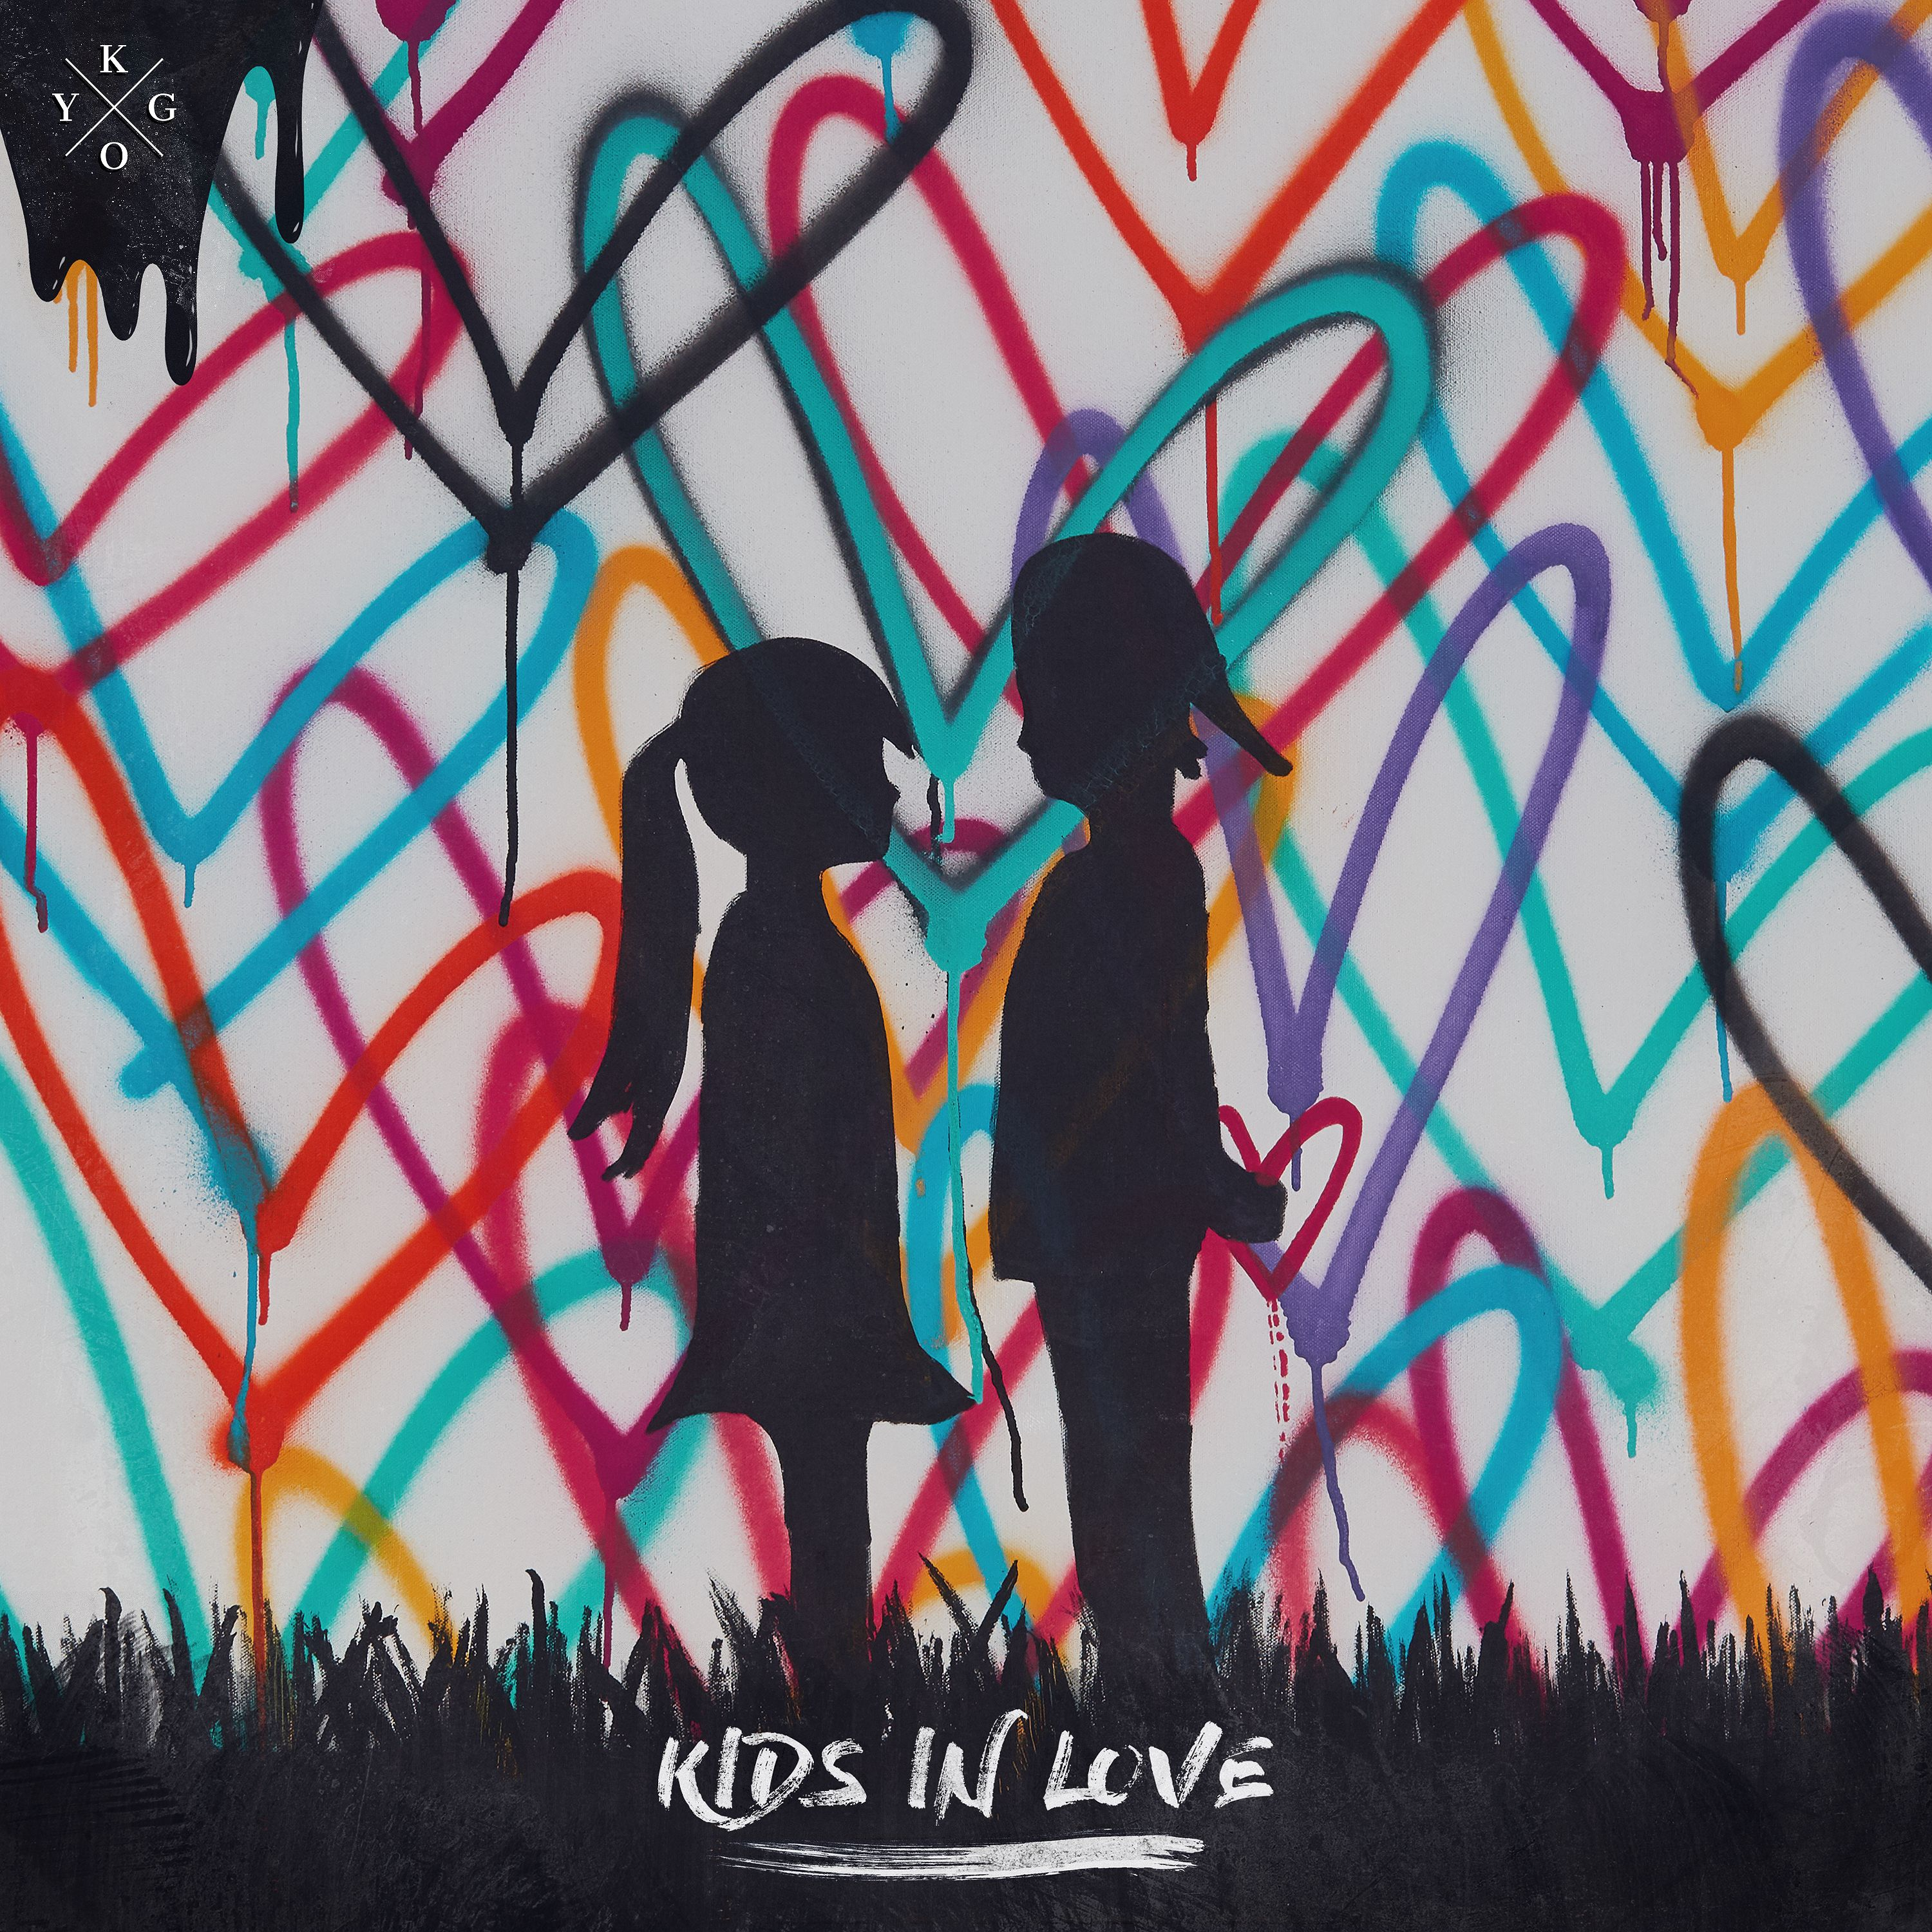 Kygo - Kids In Love album cover